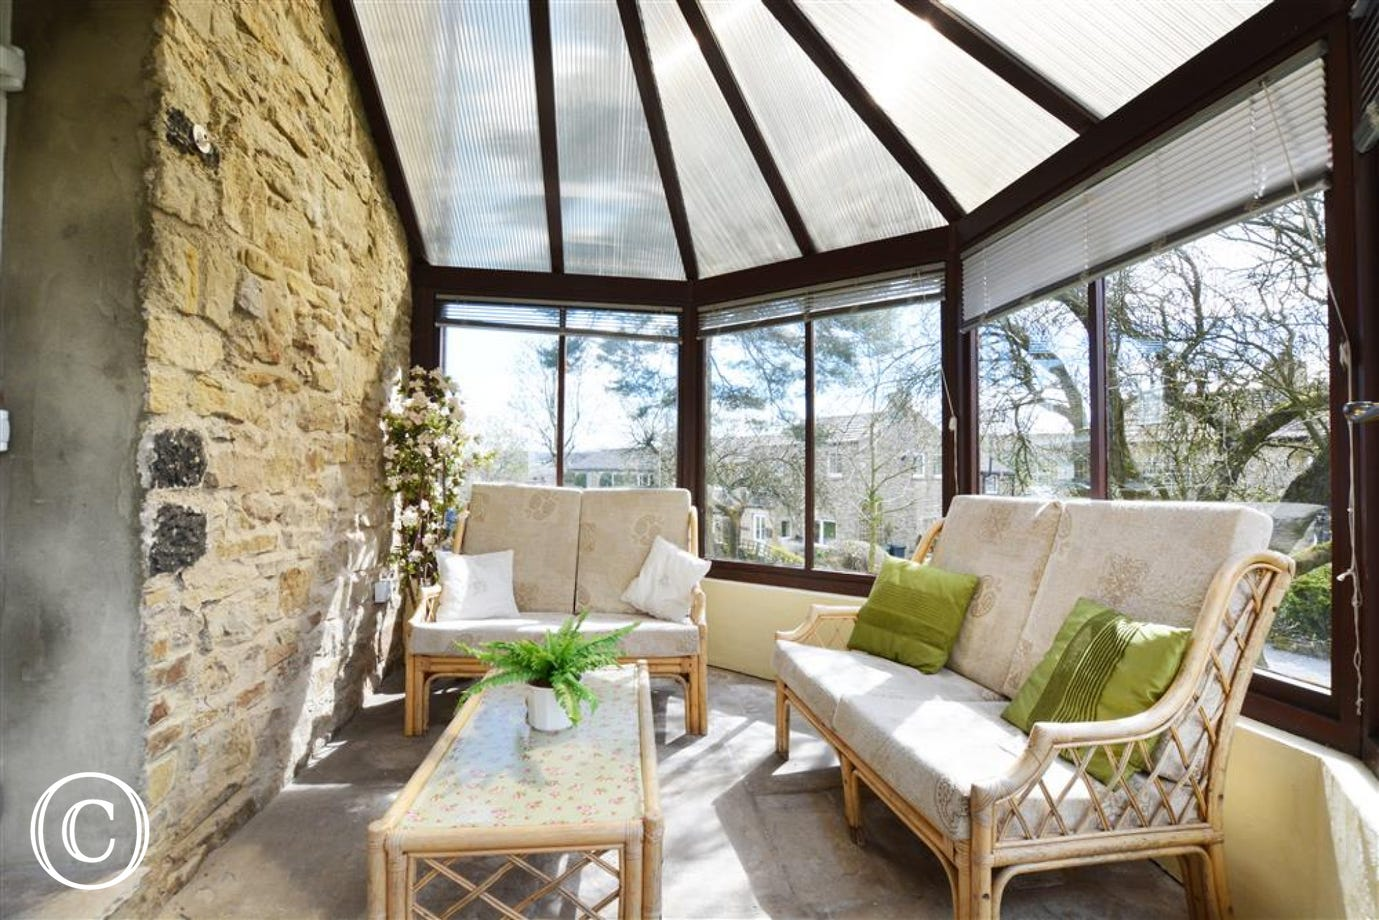 Conservatory with views over the gardens